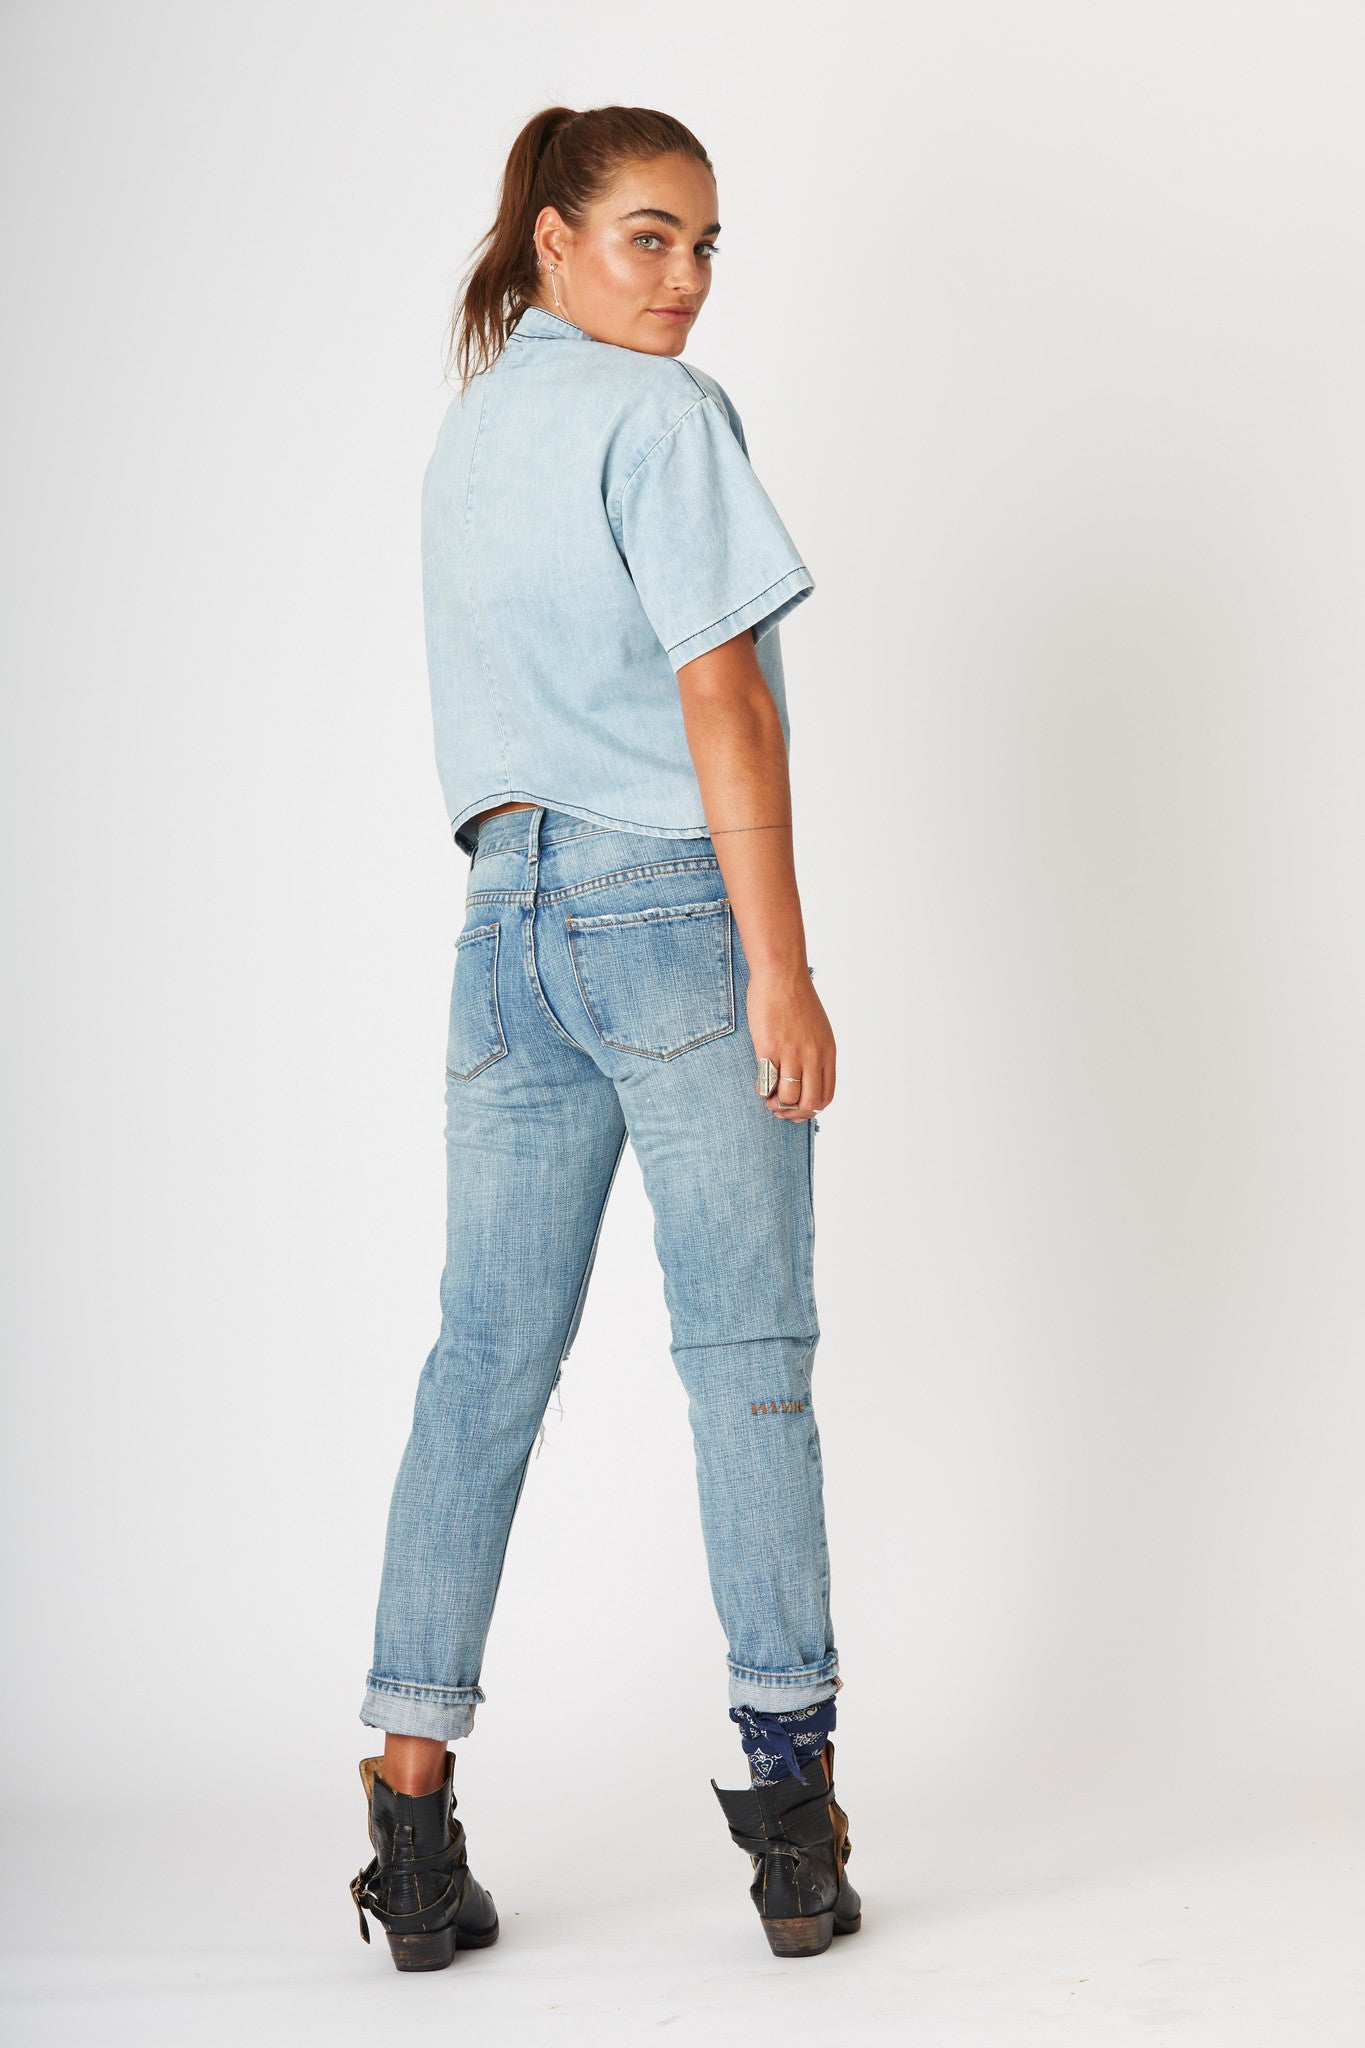 #3A10 Boyfriend Pebble Blue - SALE - - denimcolab